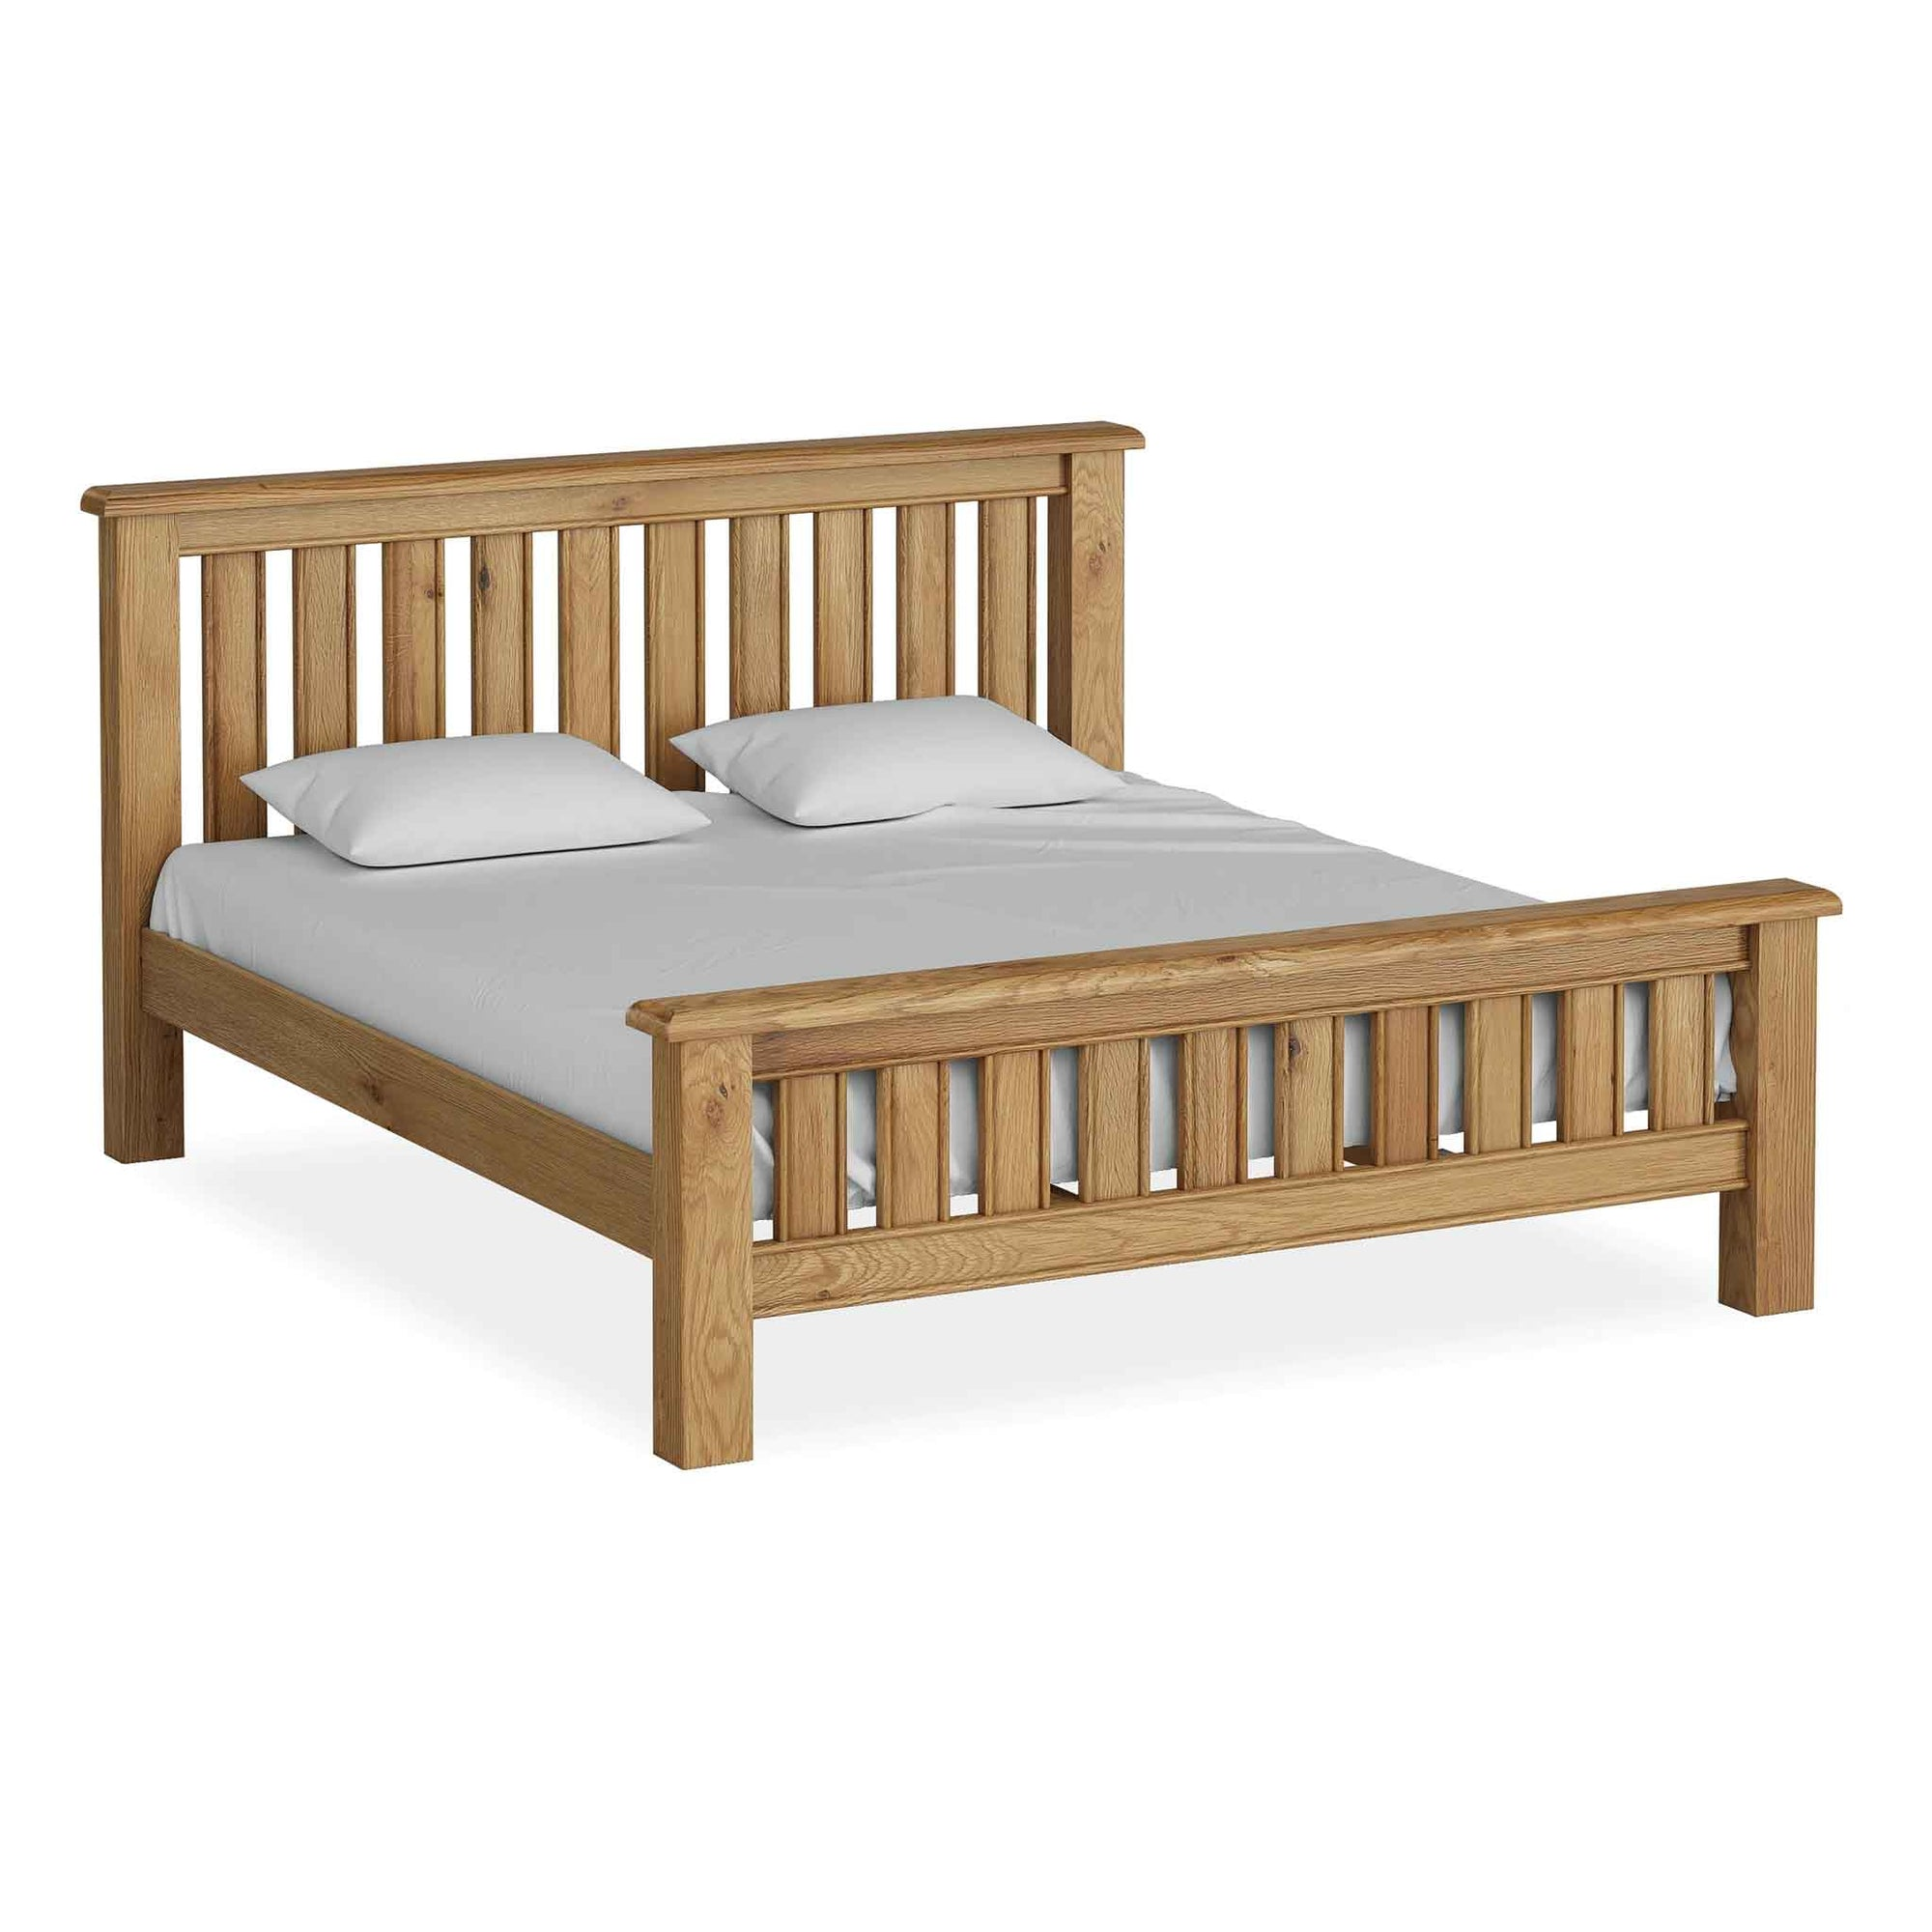 The Canterbury 6' Super King Size Oak Bed Frame from Rosleand Furniture